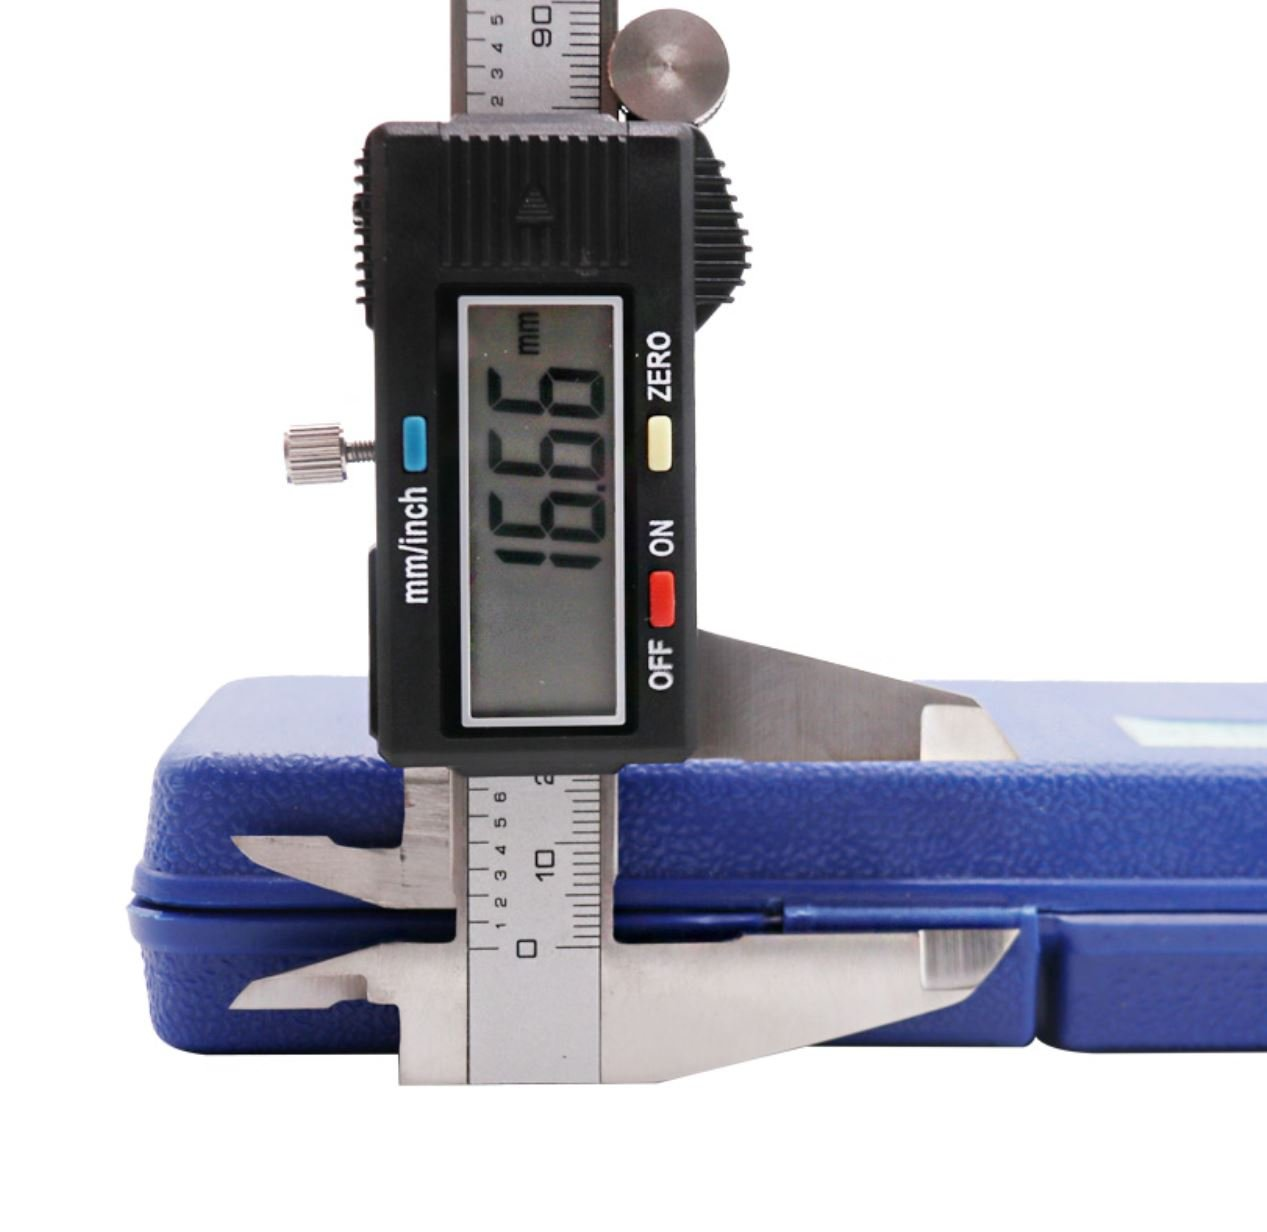 Electronic Digital Caliper 0-6 inch/150mm Vernier Extra Large LCD Screen, Stainless Steel Body, Conversion Millimeters Inches Precision Measurement Tool Depth Inside Step Outside Gauge Auto Off, Case by CaliFra (Image #8)